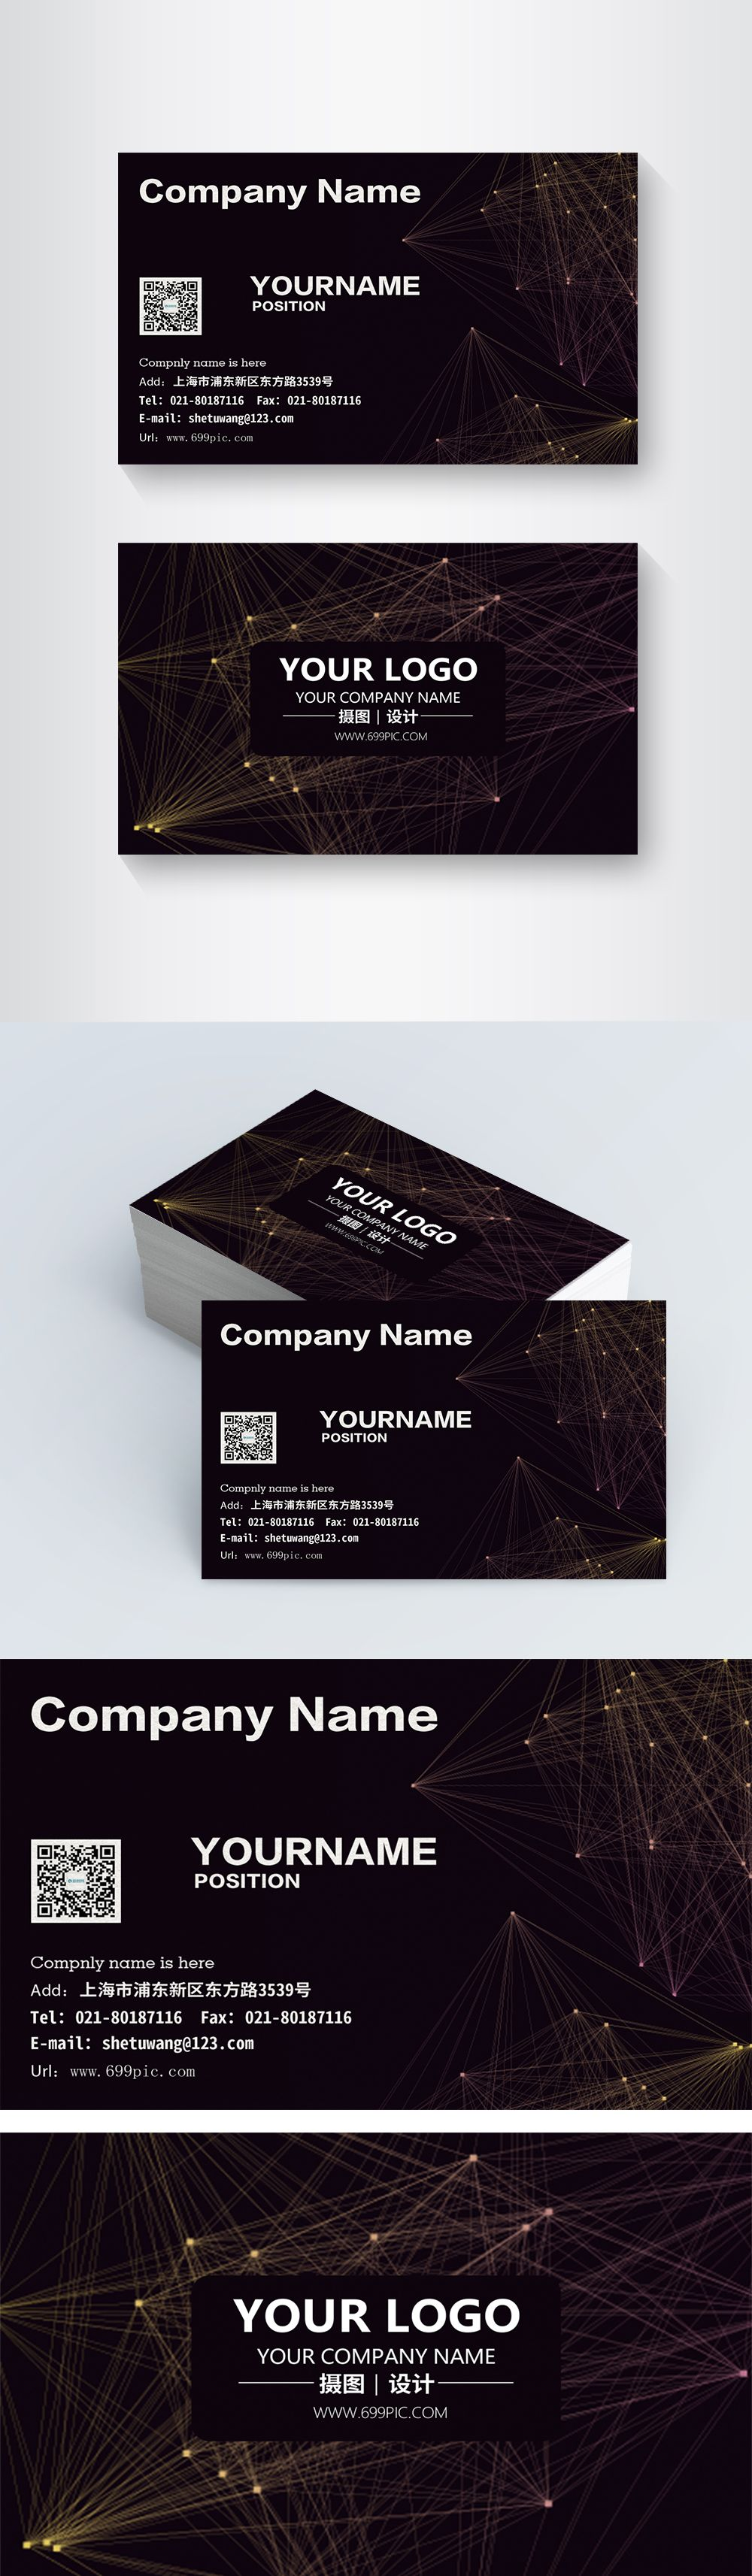 Business Card Of Black Science And Technology Business Business Card Business Card Simple Business Cards Free Business Card Templates Business Card Template